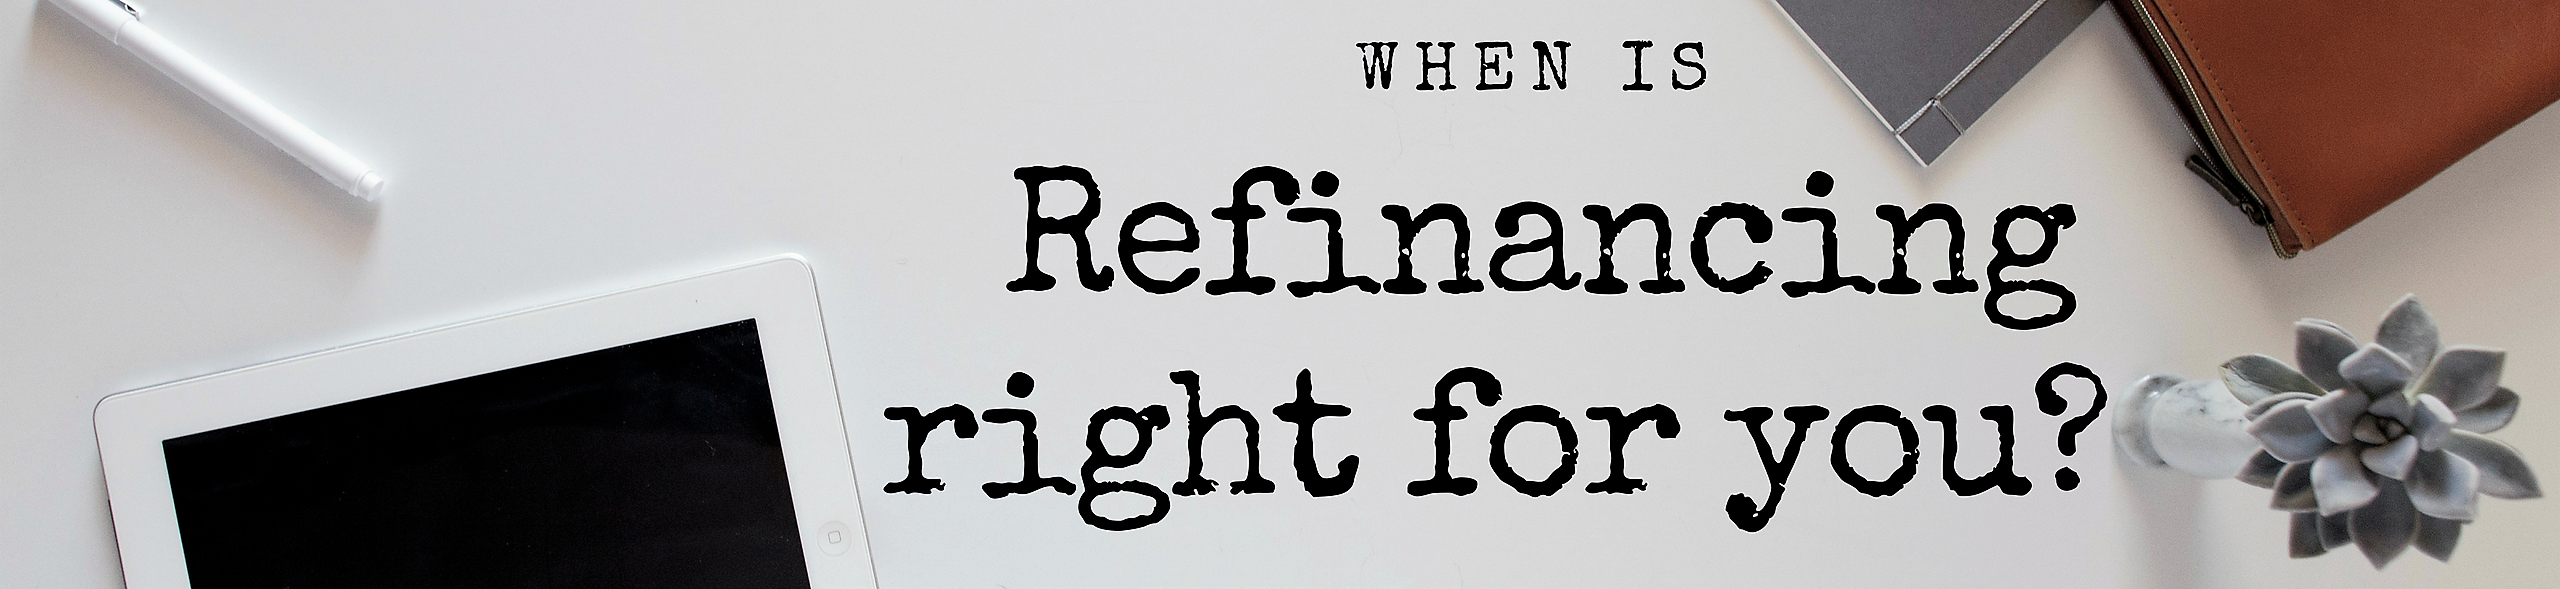 When is a refinance right for you?